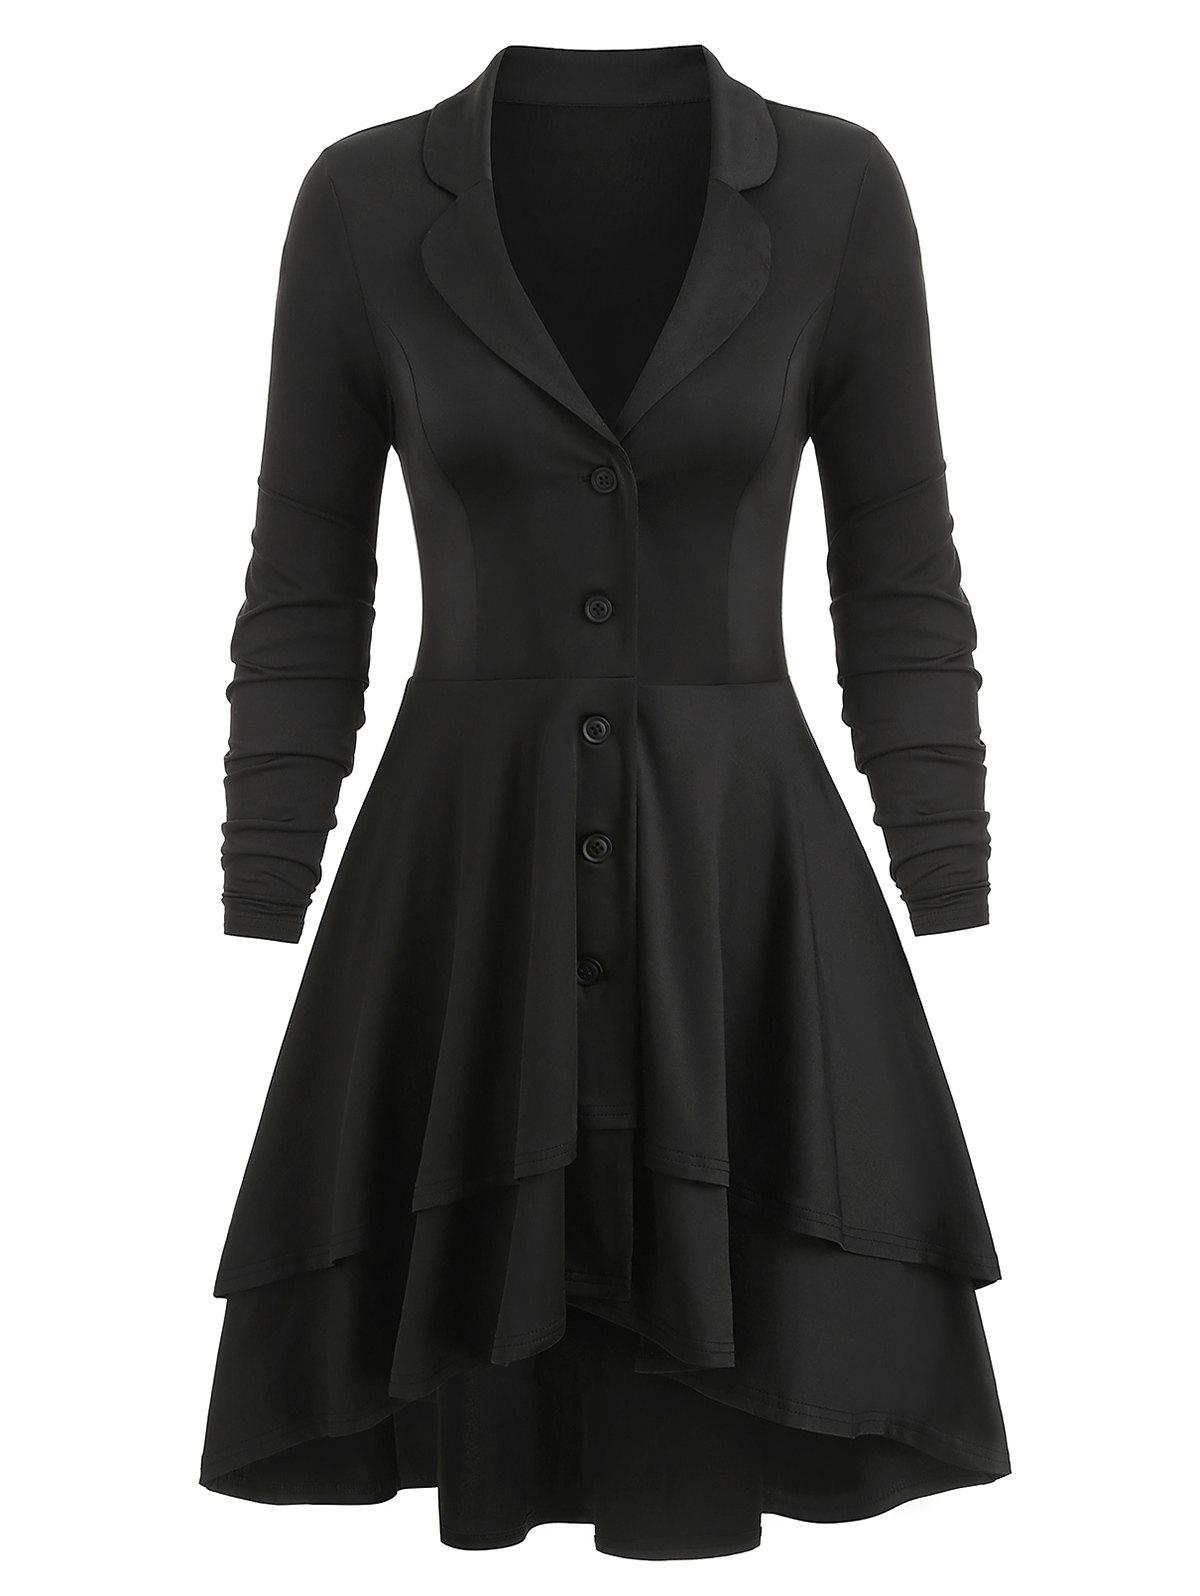 Button Up Lace-up Back High Low Layered Skirted Coat - BLACK M